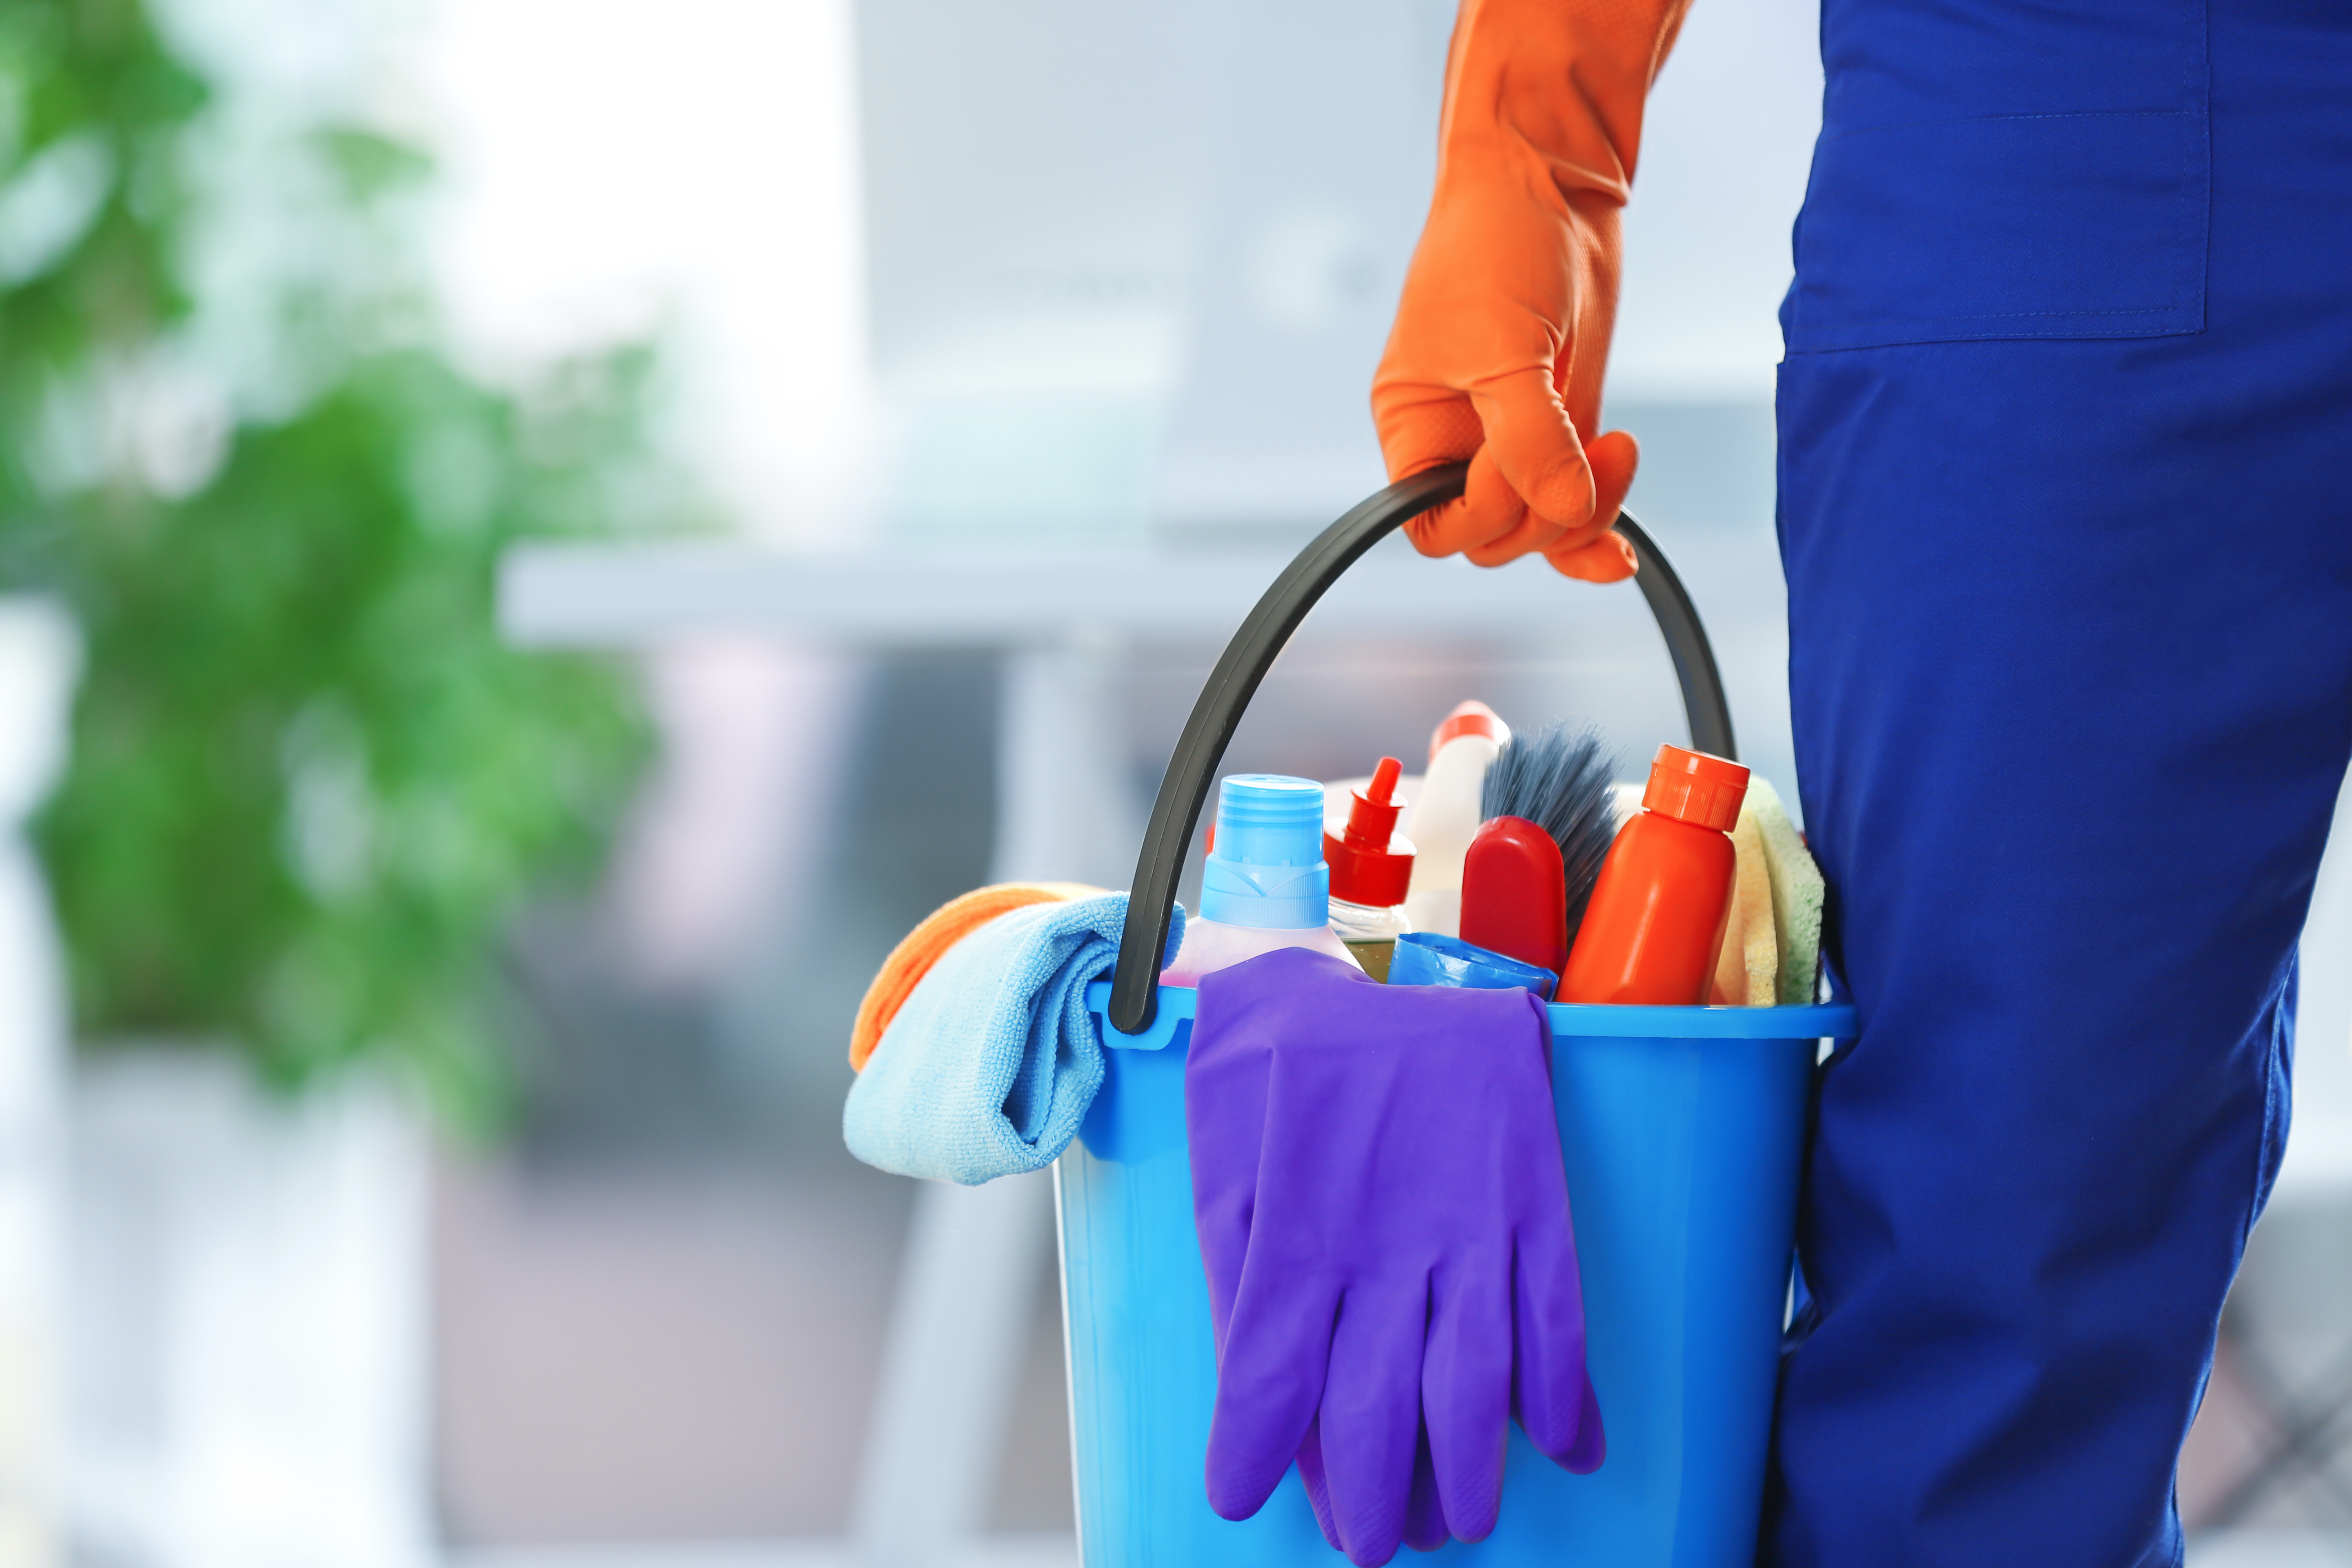 Automation Enables Safe, Efficient, and Cost-Effective Cleaning During COVID-19 Pandemic